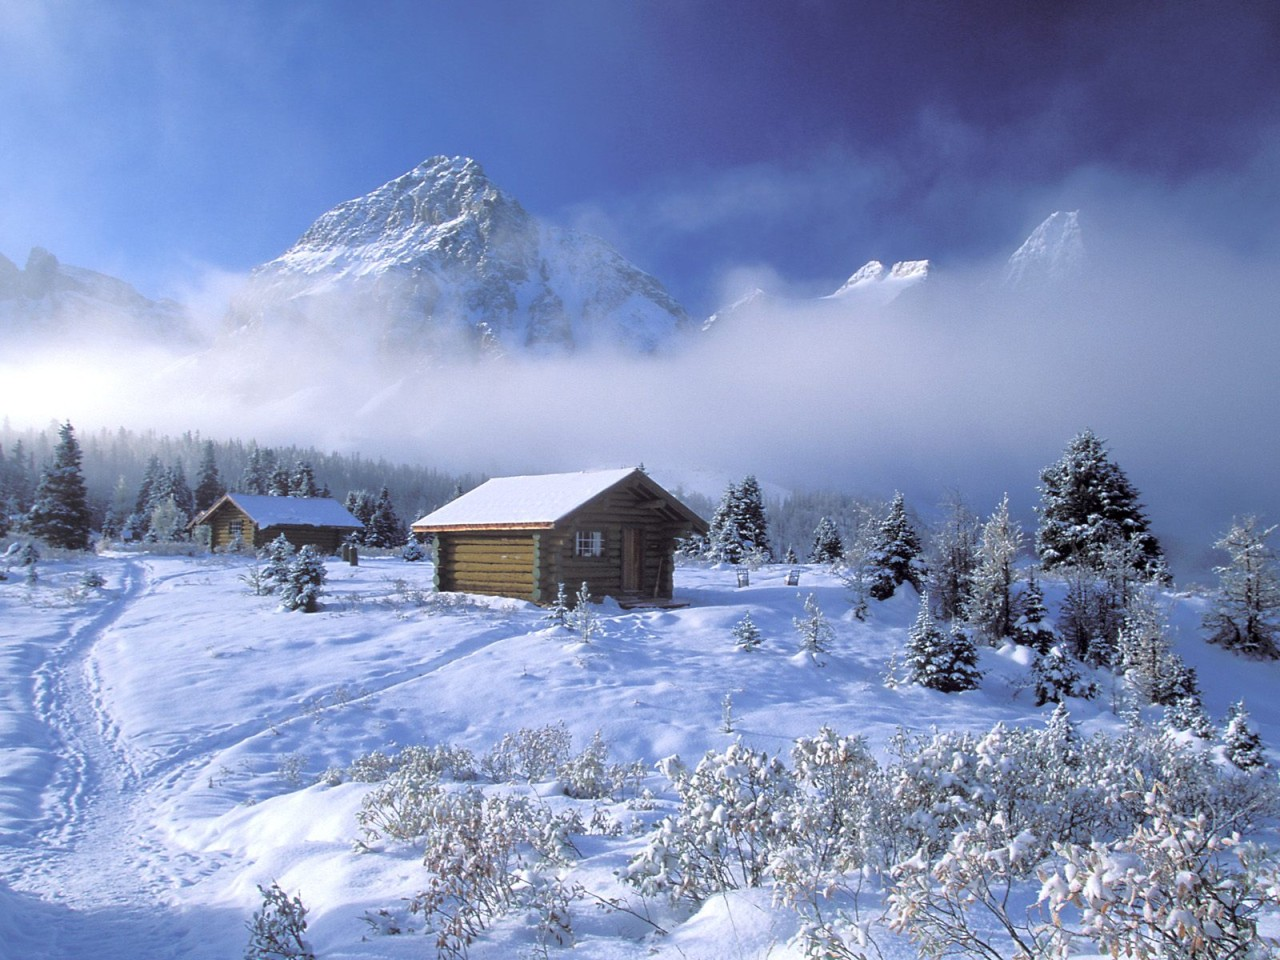 Winter wallpapers cabin in the mountains Urban Art Wallpaper 1280x960